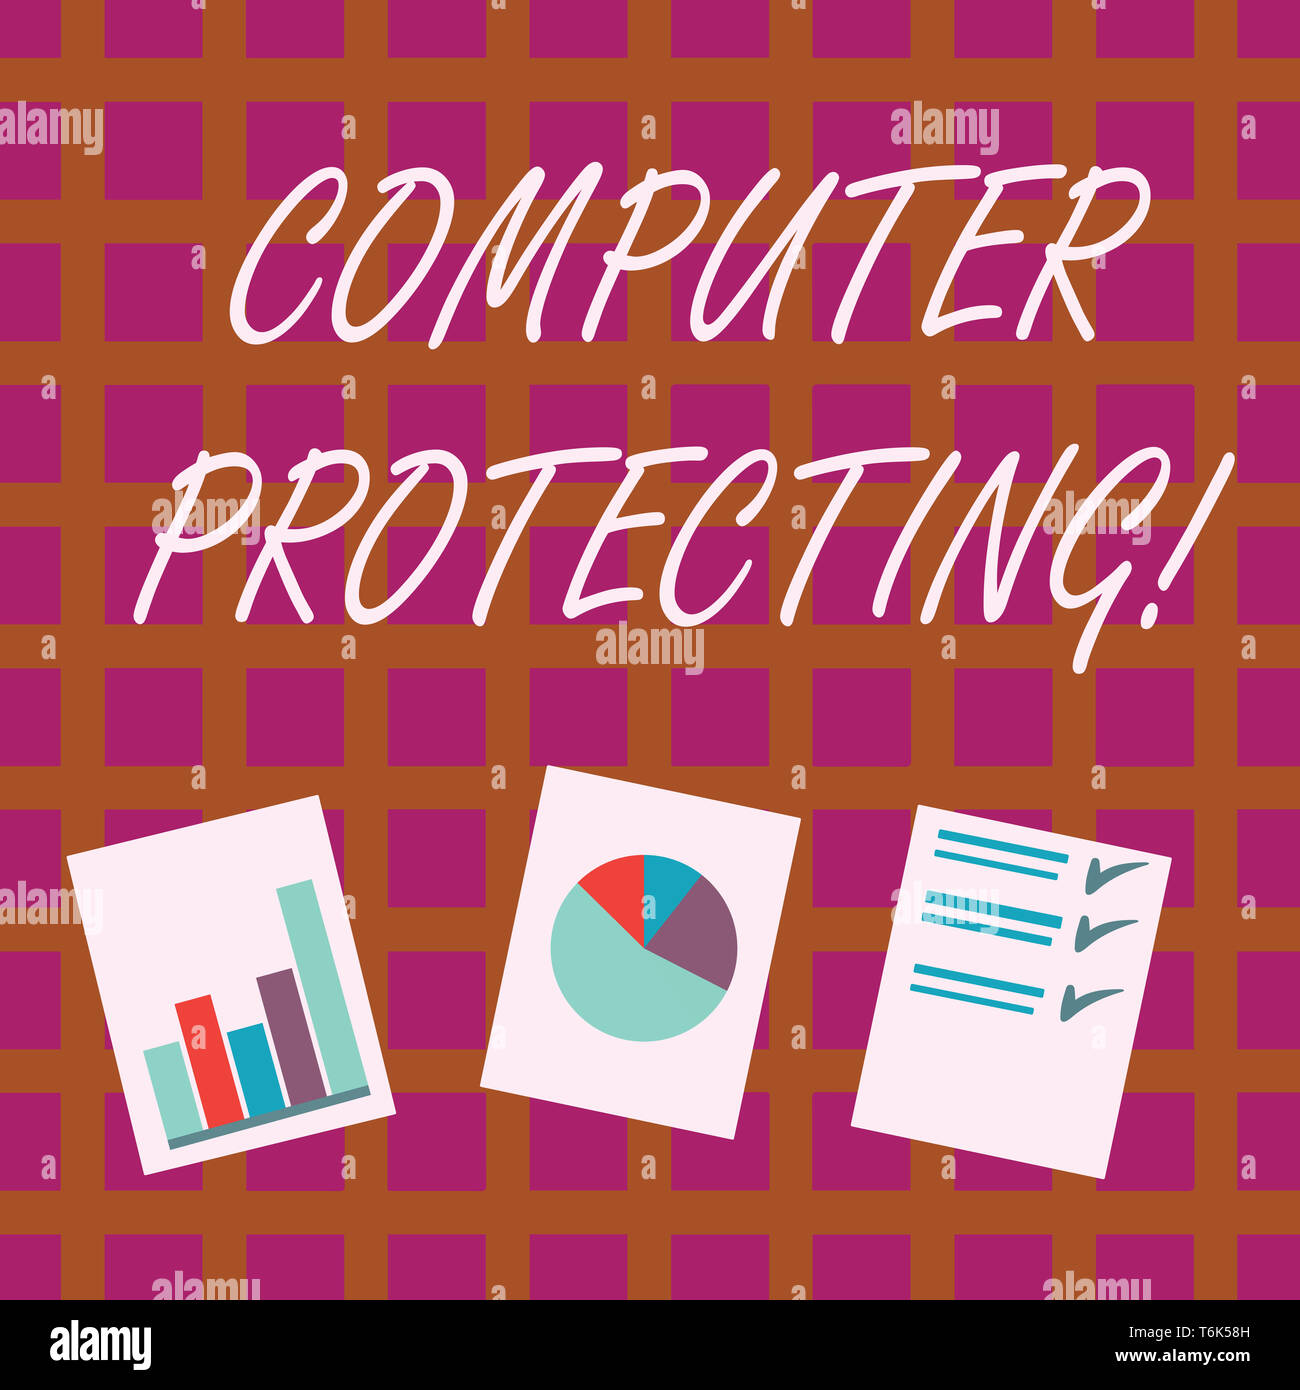 Conceptual hand writing showing Computer Protecting. Concept meaning protecting computer against unauthorized intrusions Presentation of Bar, Data and Stock Photo